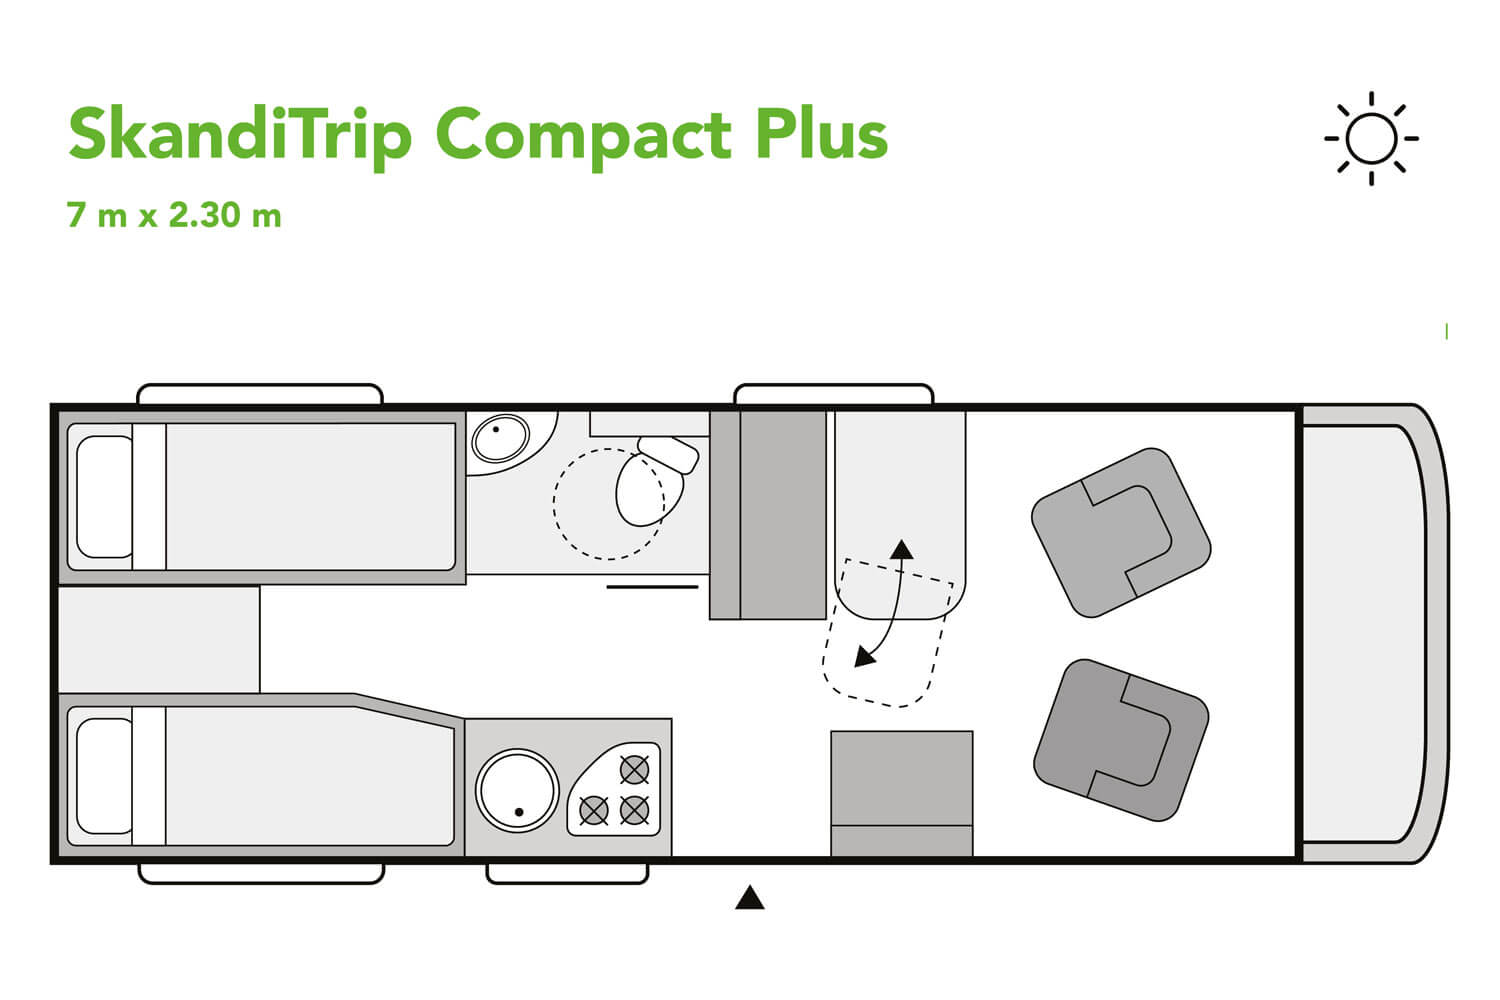 SkandiTrip camping car nighttime blueprint